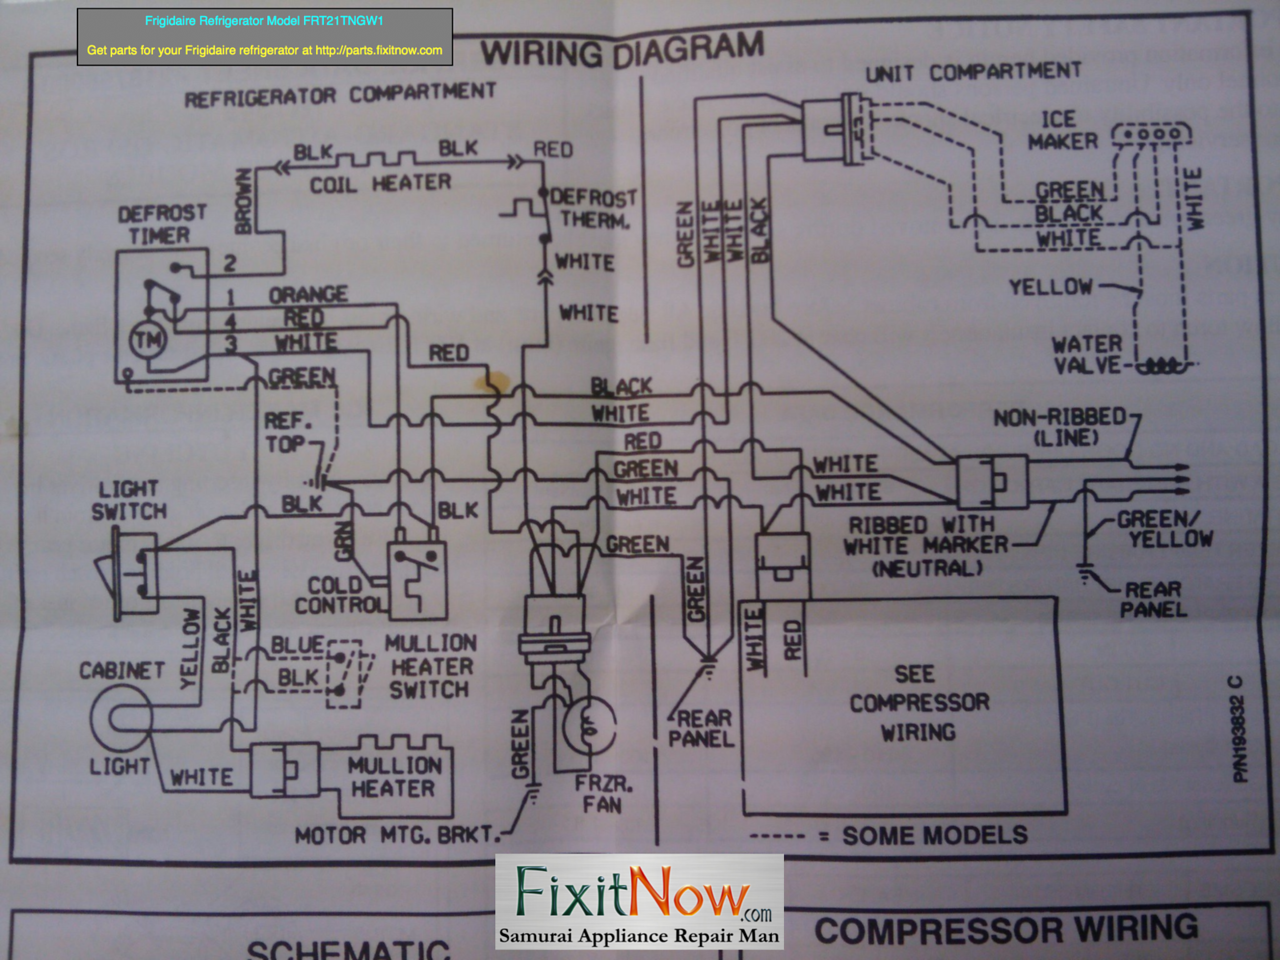 4927632513_66c123c922_o X2 wiring diagram for ge refrigerator readingrat net ge electric dryer wiring diagram at gsmx.co